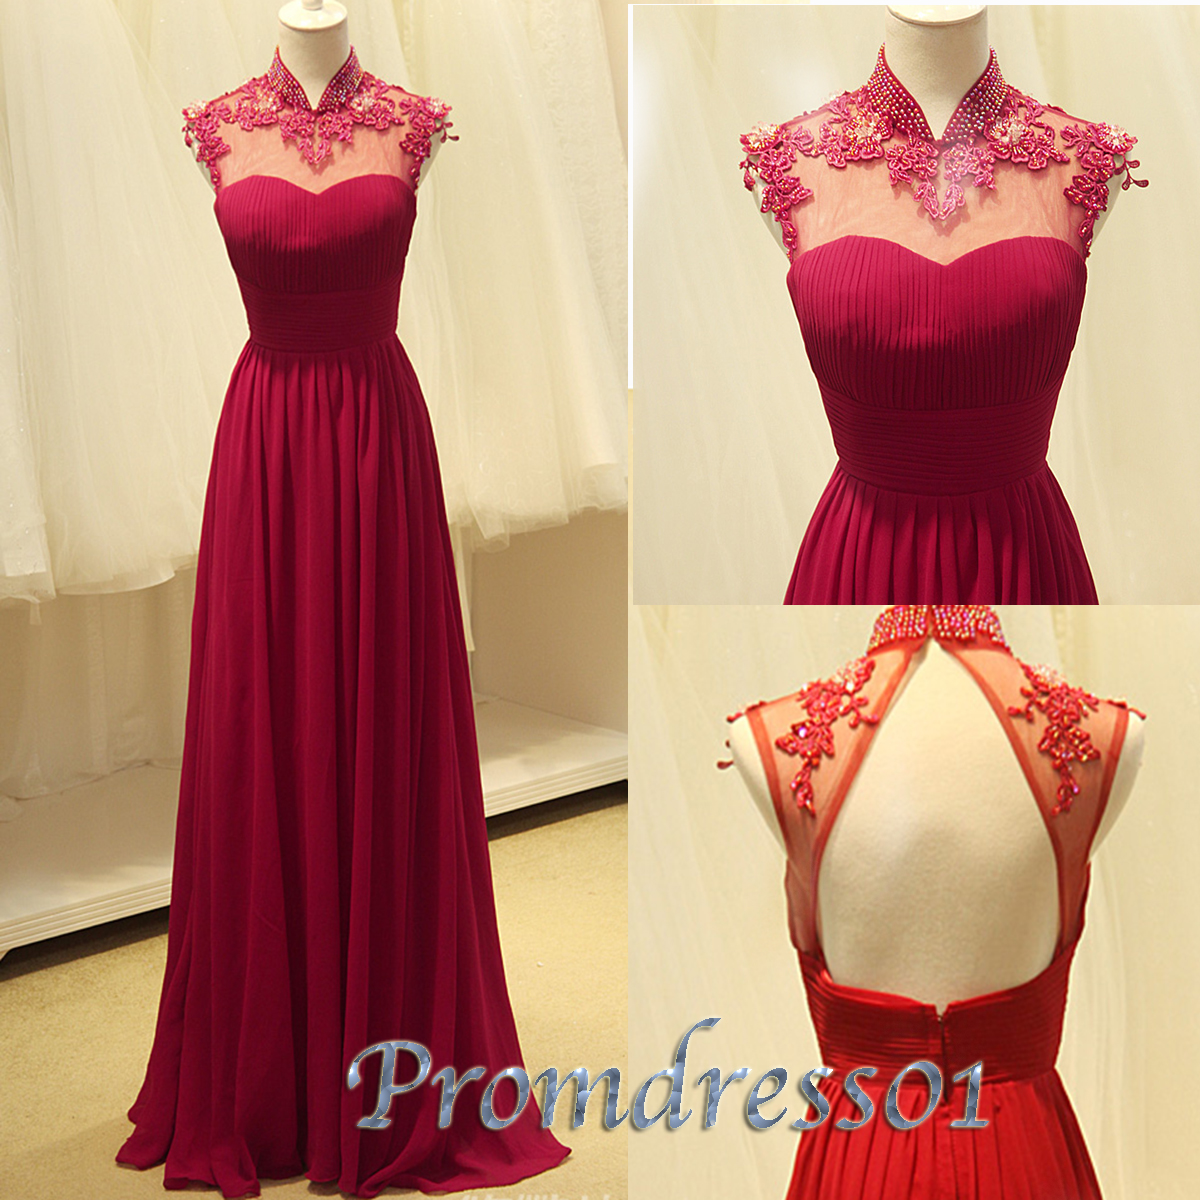 Cute Wine Red Chiffon Open Back Long Prom Dresses 2017 Promdress01 Formal